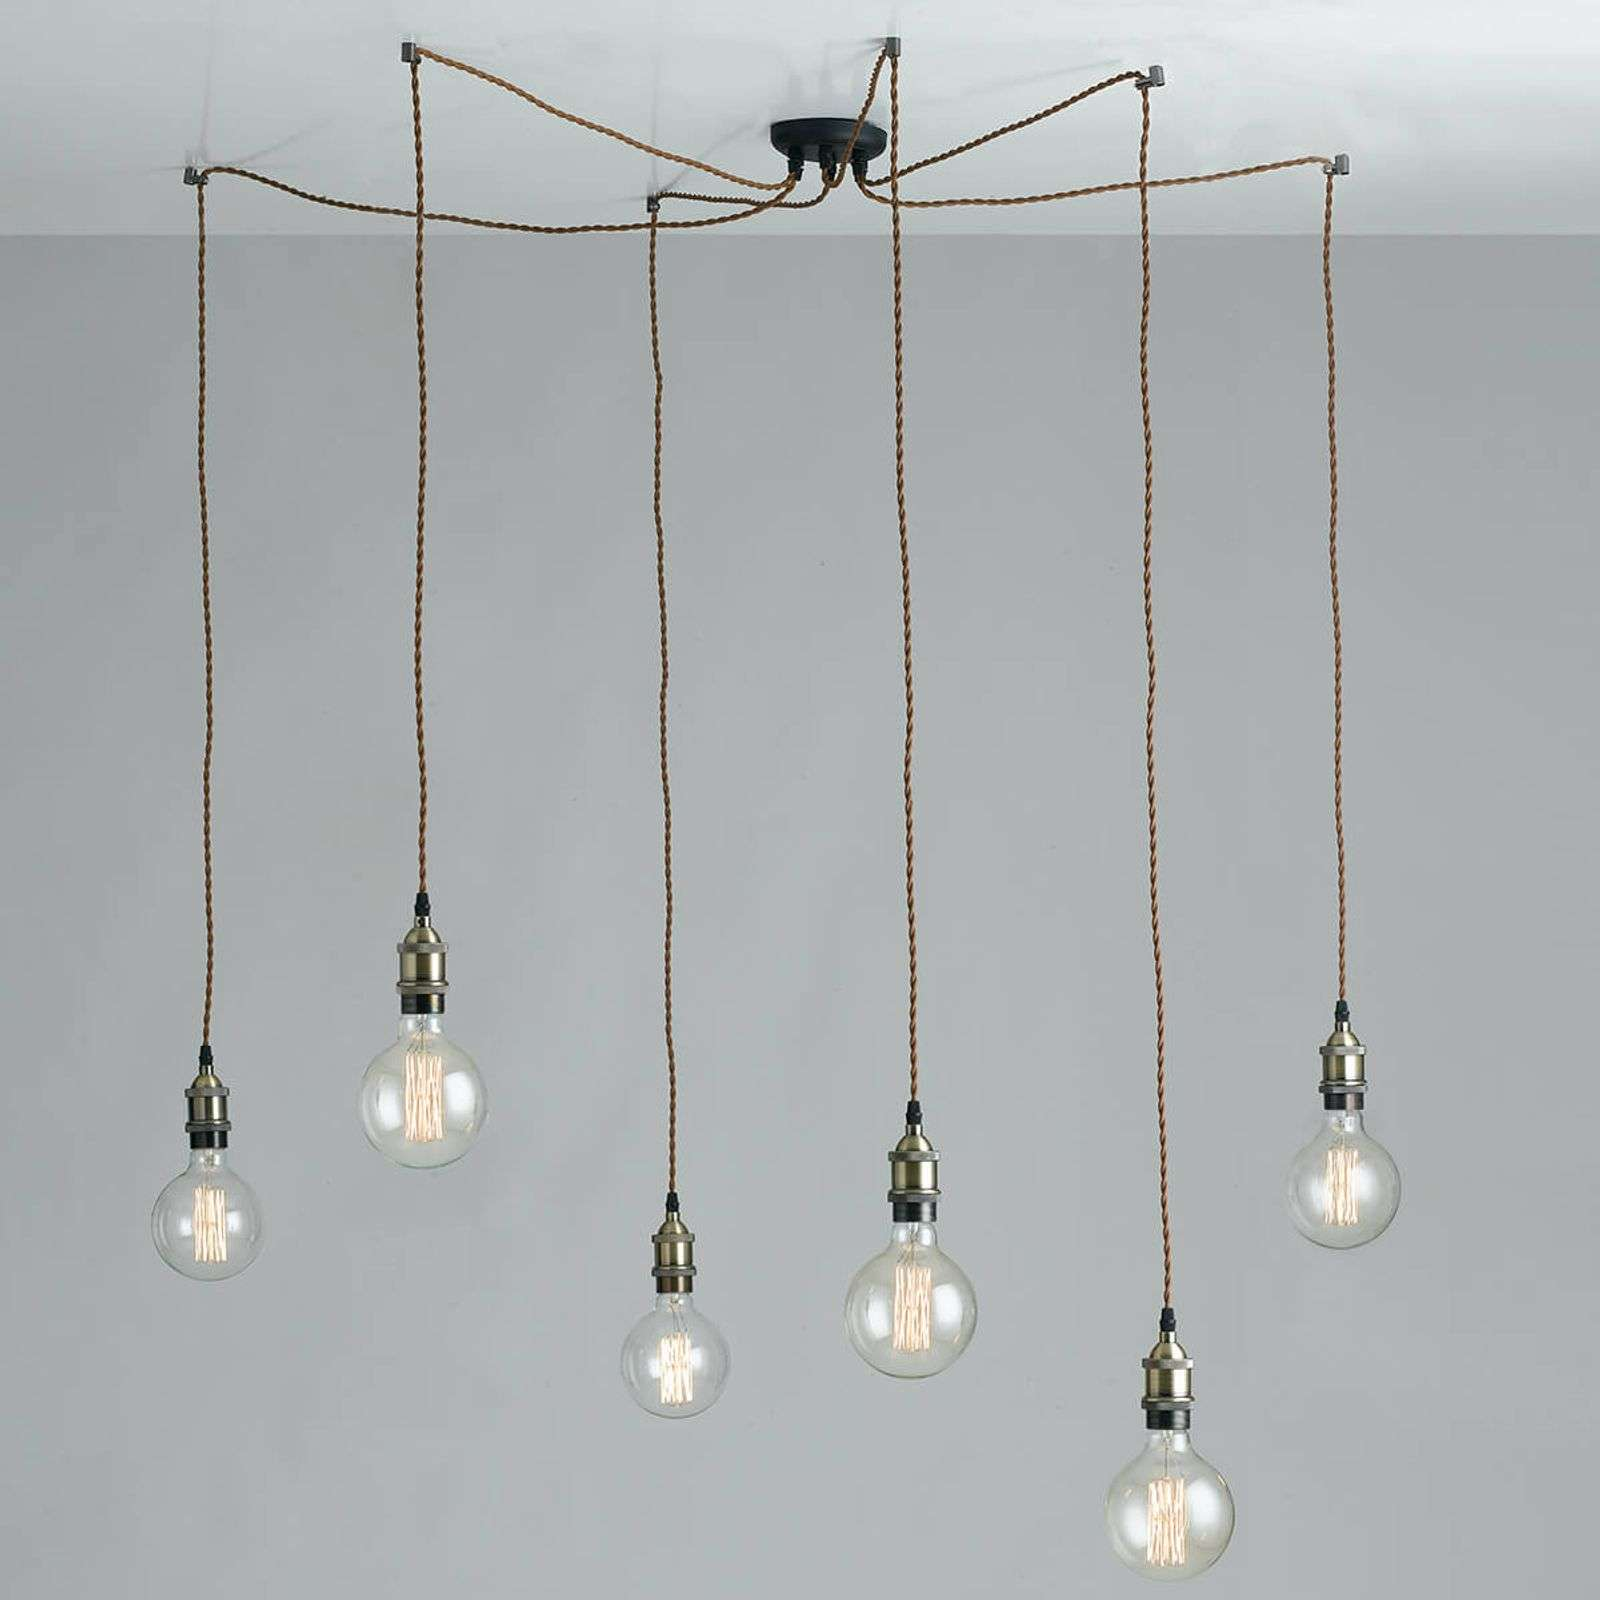 Suspension en araignée Groove, look Vintage